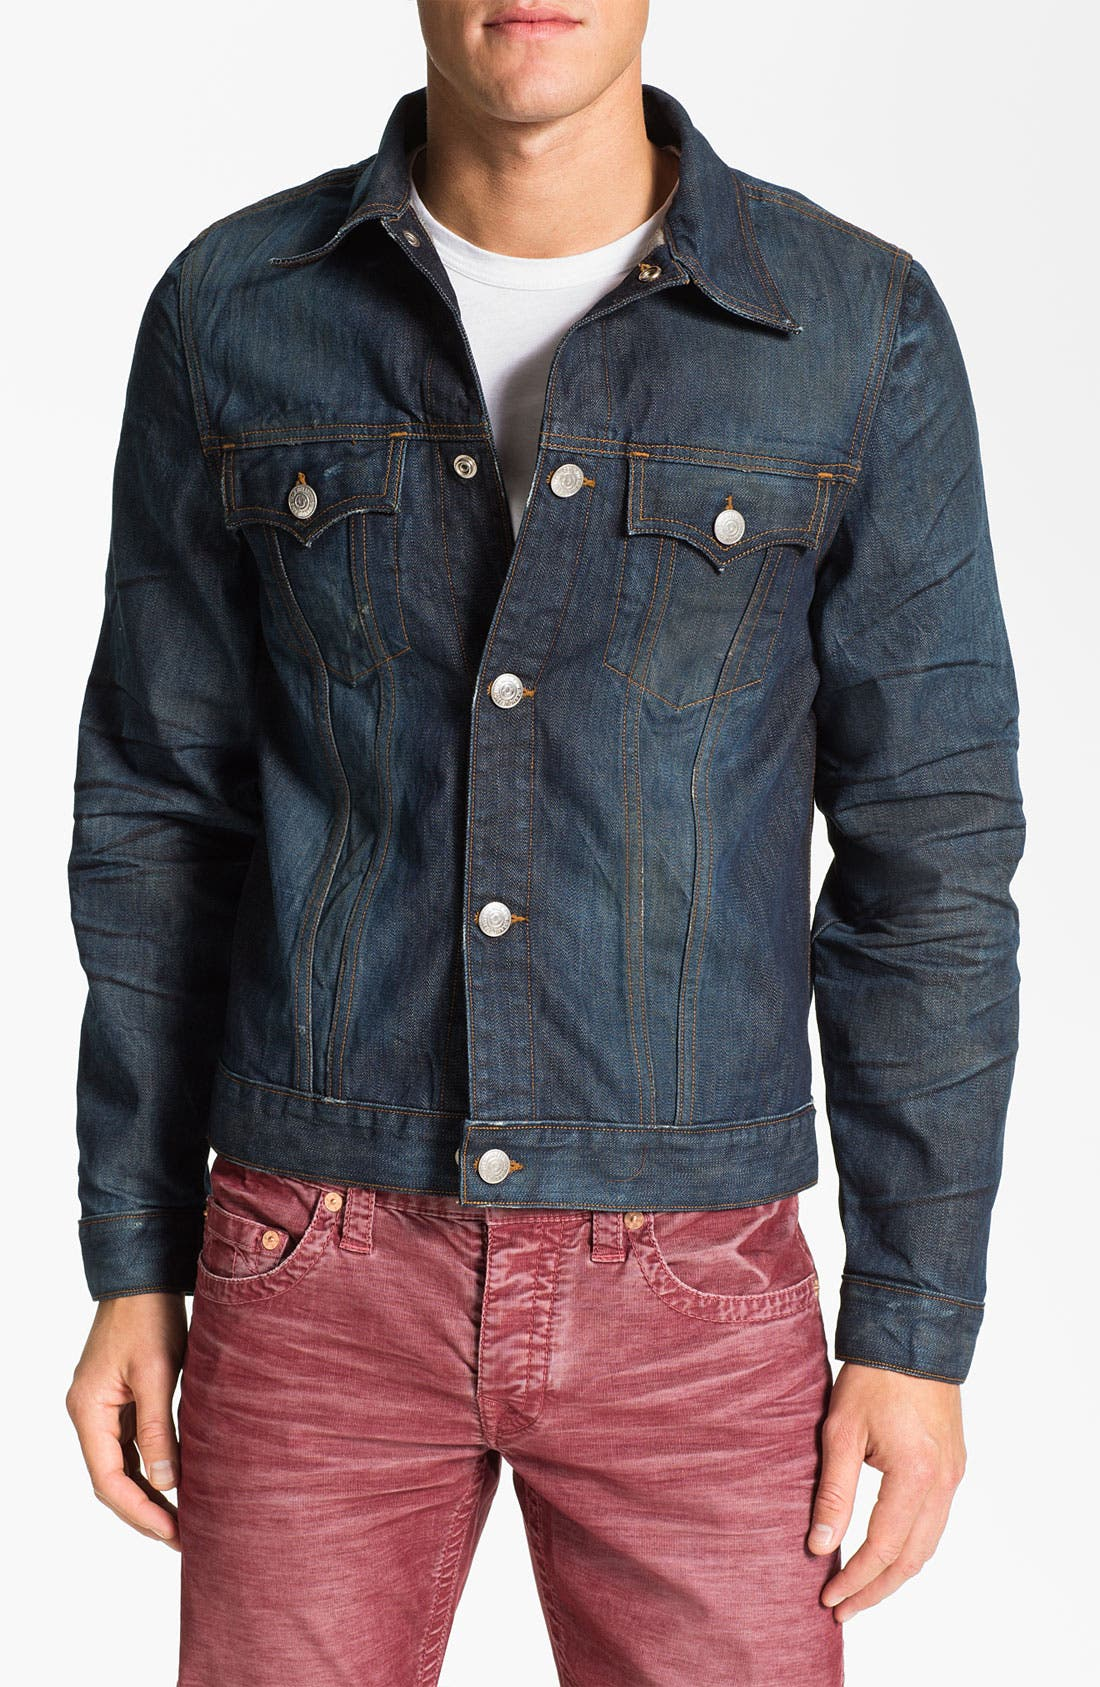 Main Image - True Religion Brand Jeans '1971 Jimmy Western Trucker' Denim Jacket